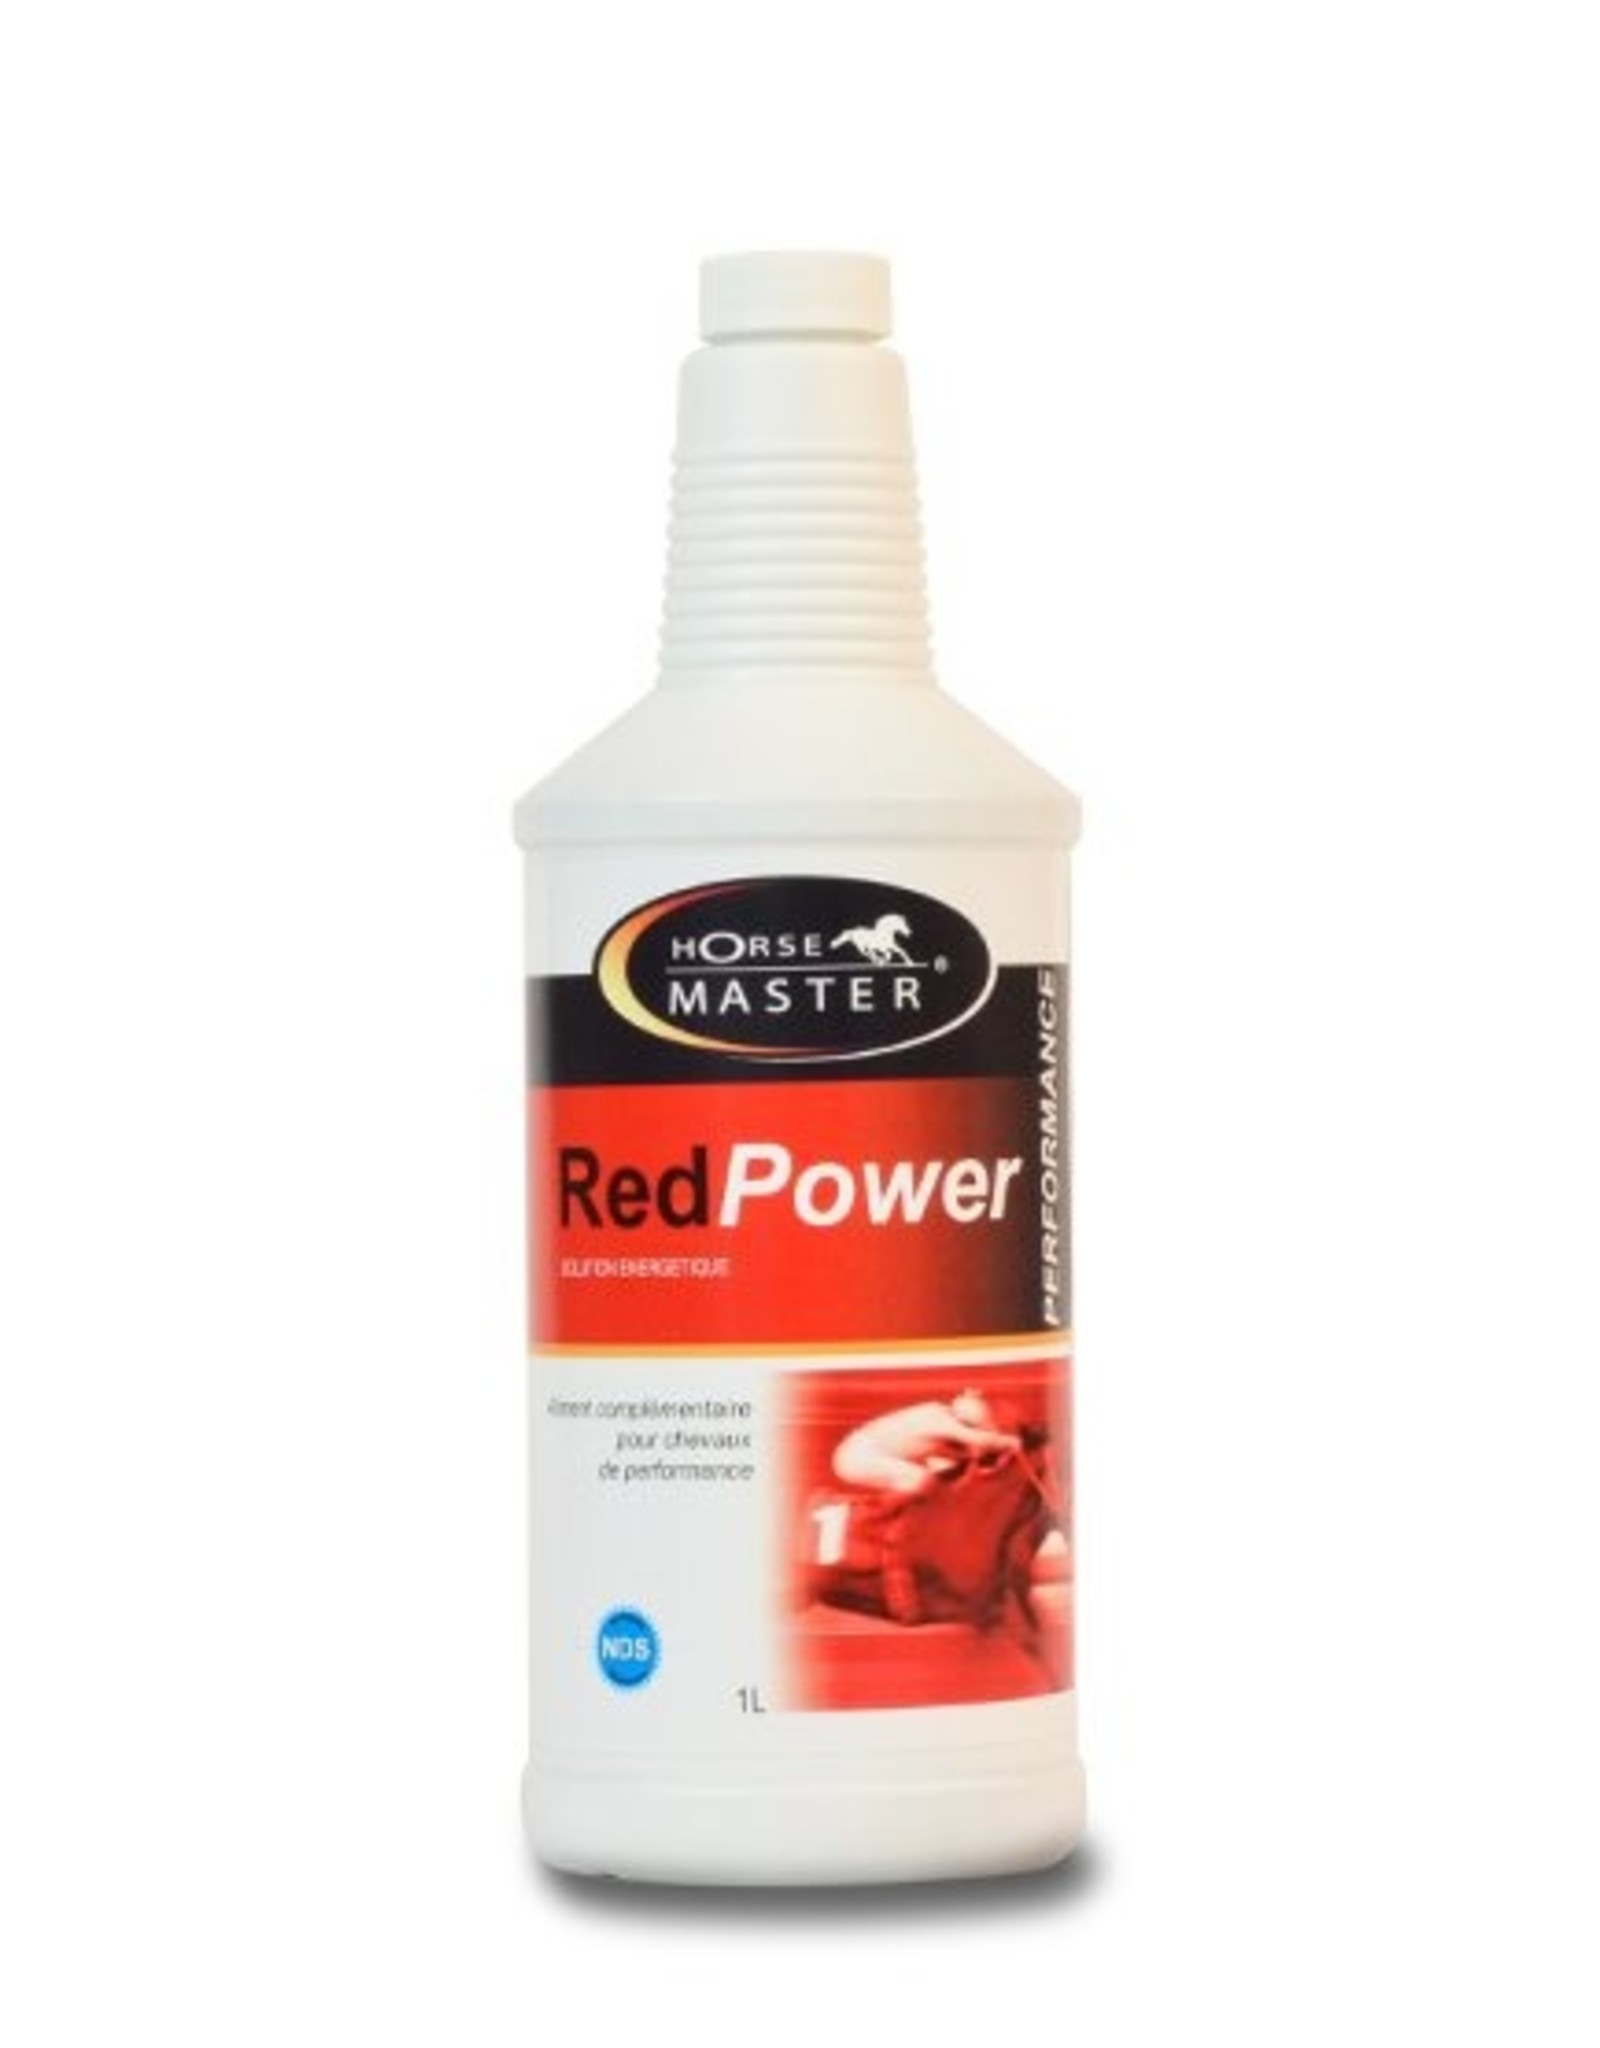 Horse Master Red Power